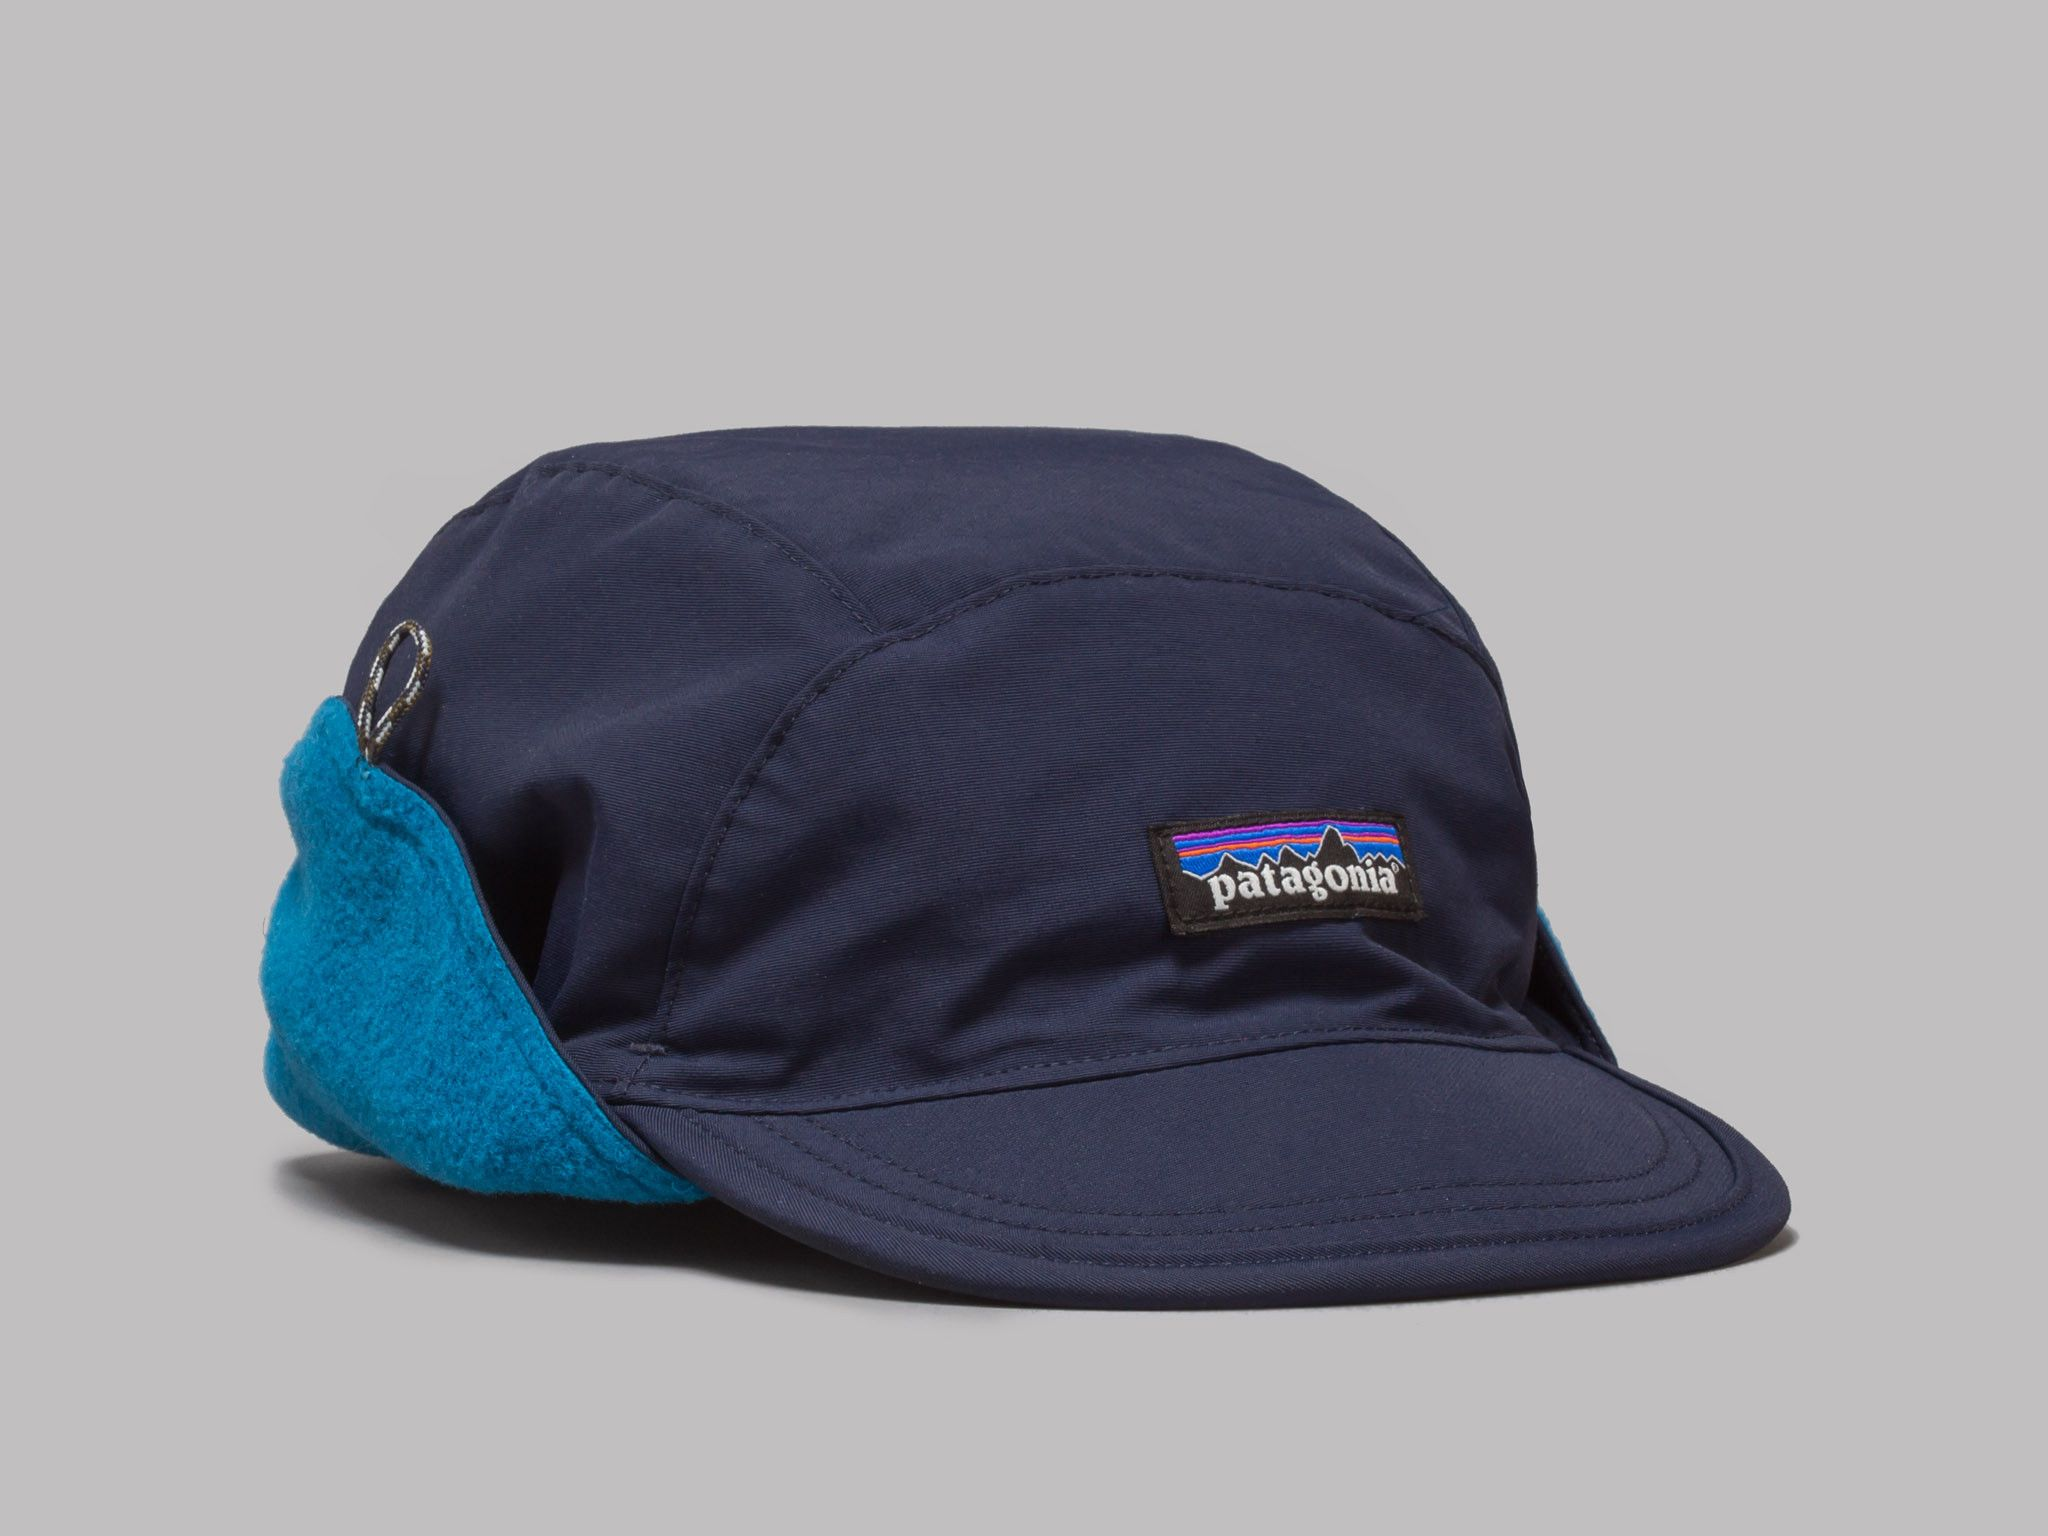 e1d5ec8c62a Patagonia Shelled Synchilla Duckbill Cap (Navy Blue)